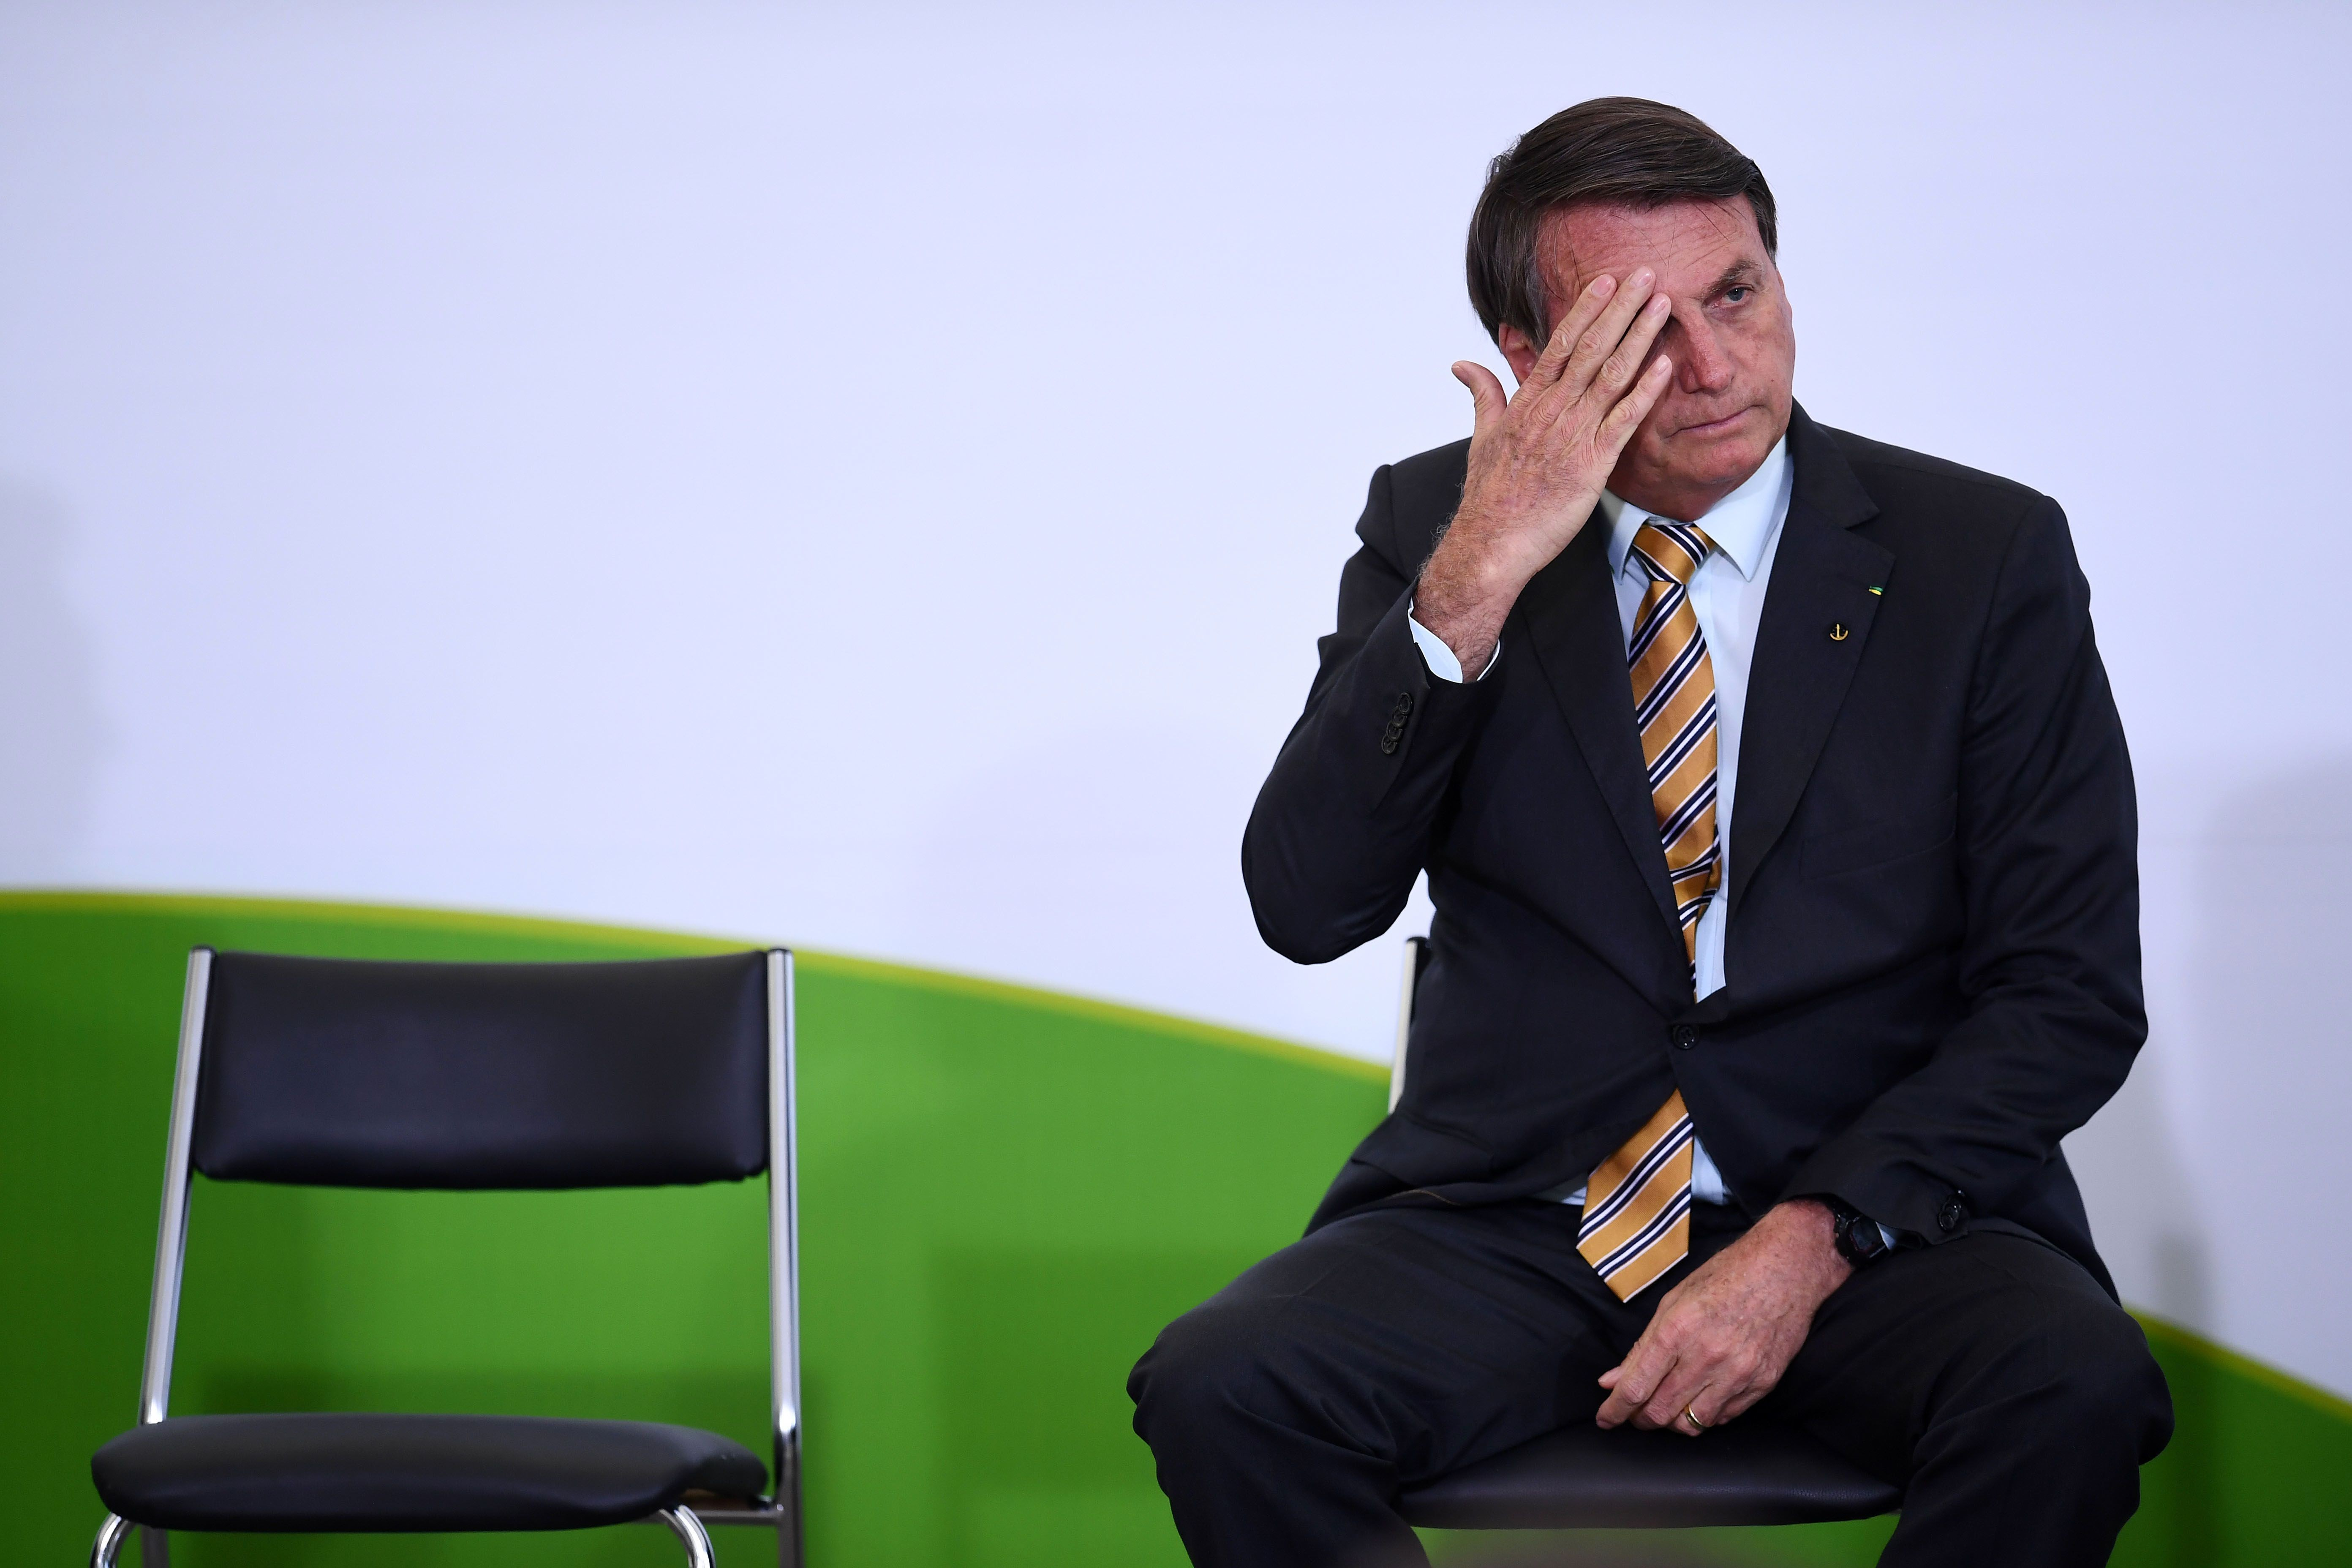 O presidente Jair Bolsonaro em evento no Palácio do Planalto